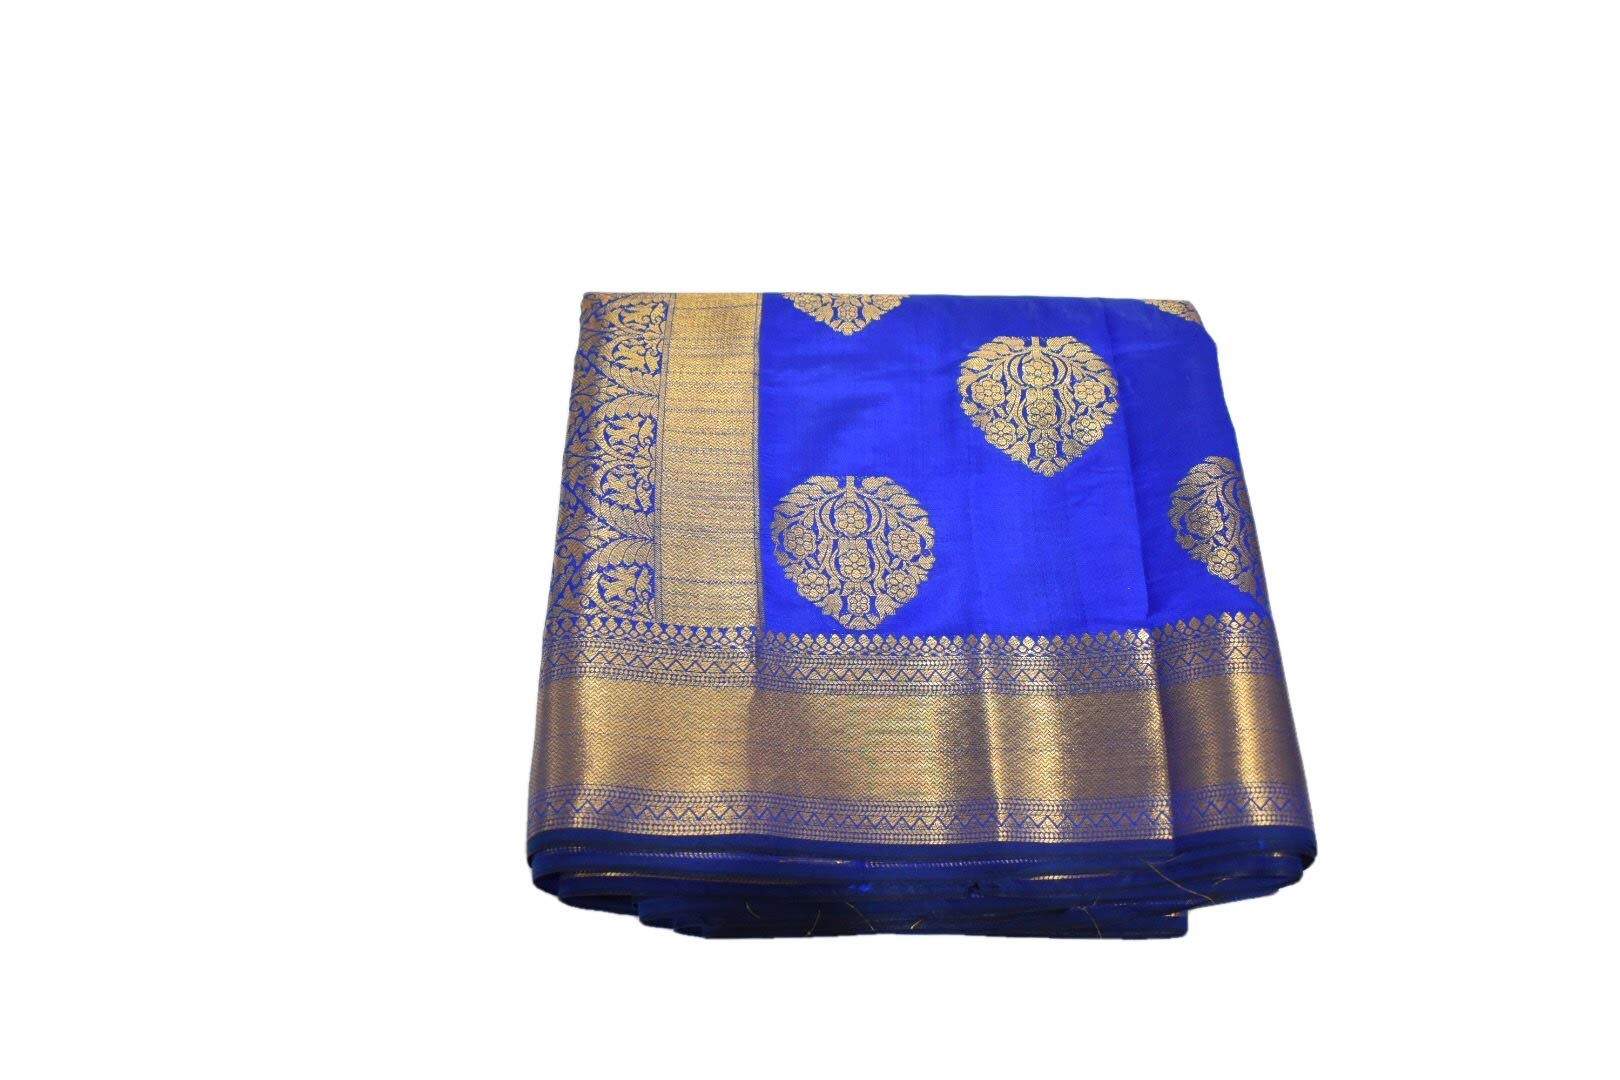 Rainbow Collections Silk Blend Saree with zari Design and Border in Blue Color. Saree Fall and Edge is Fully Stitched.